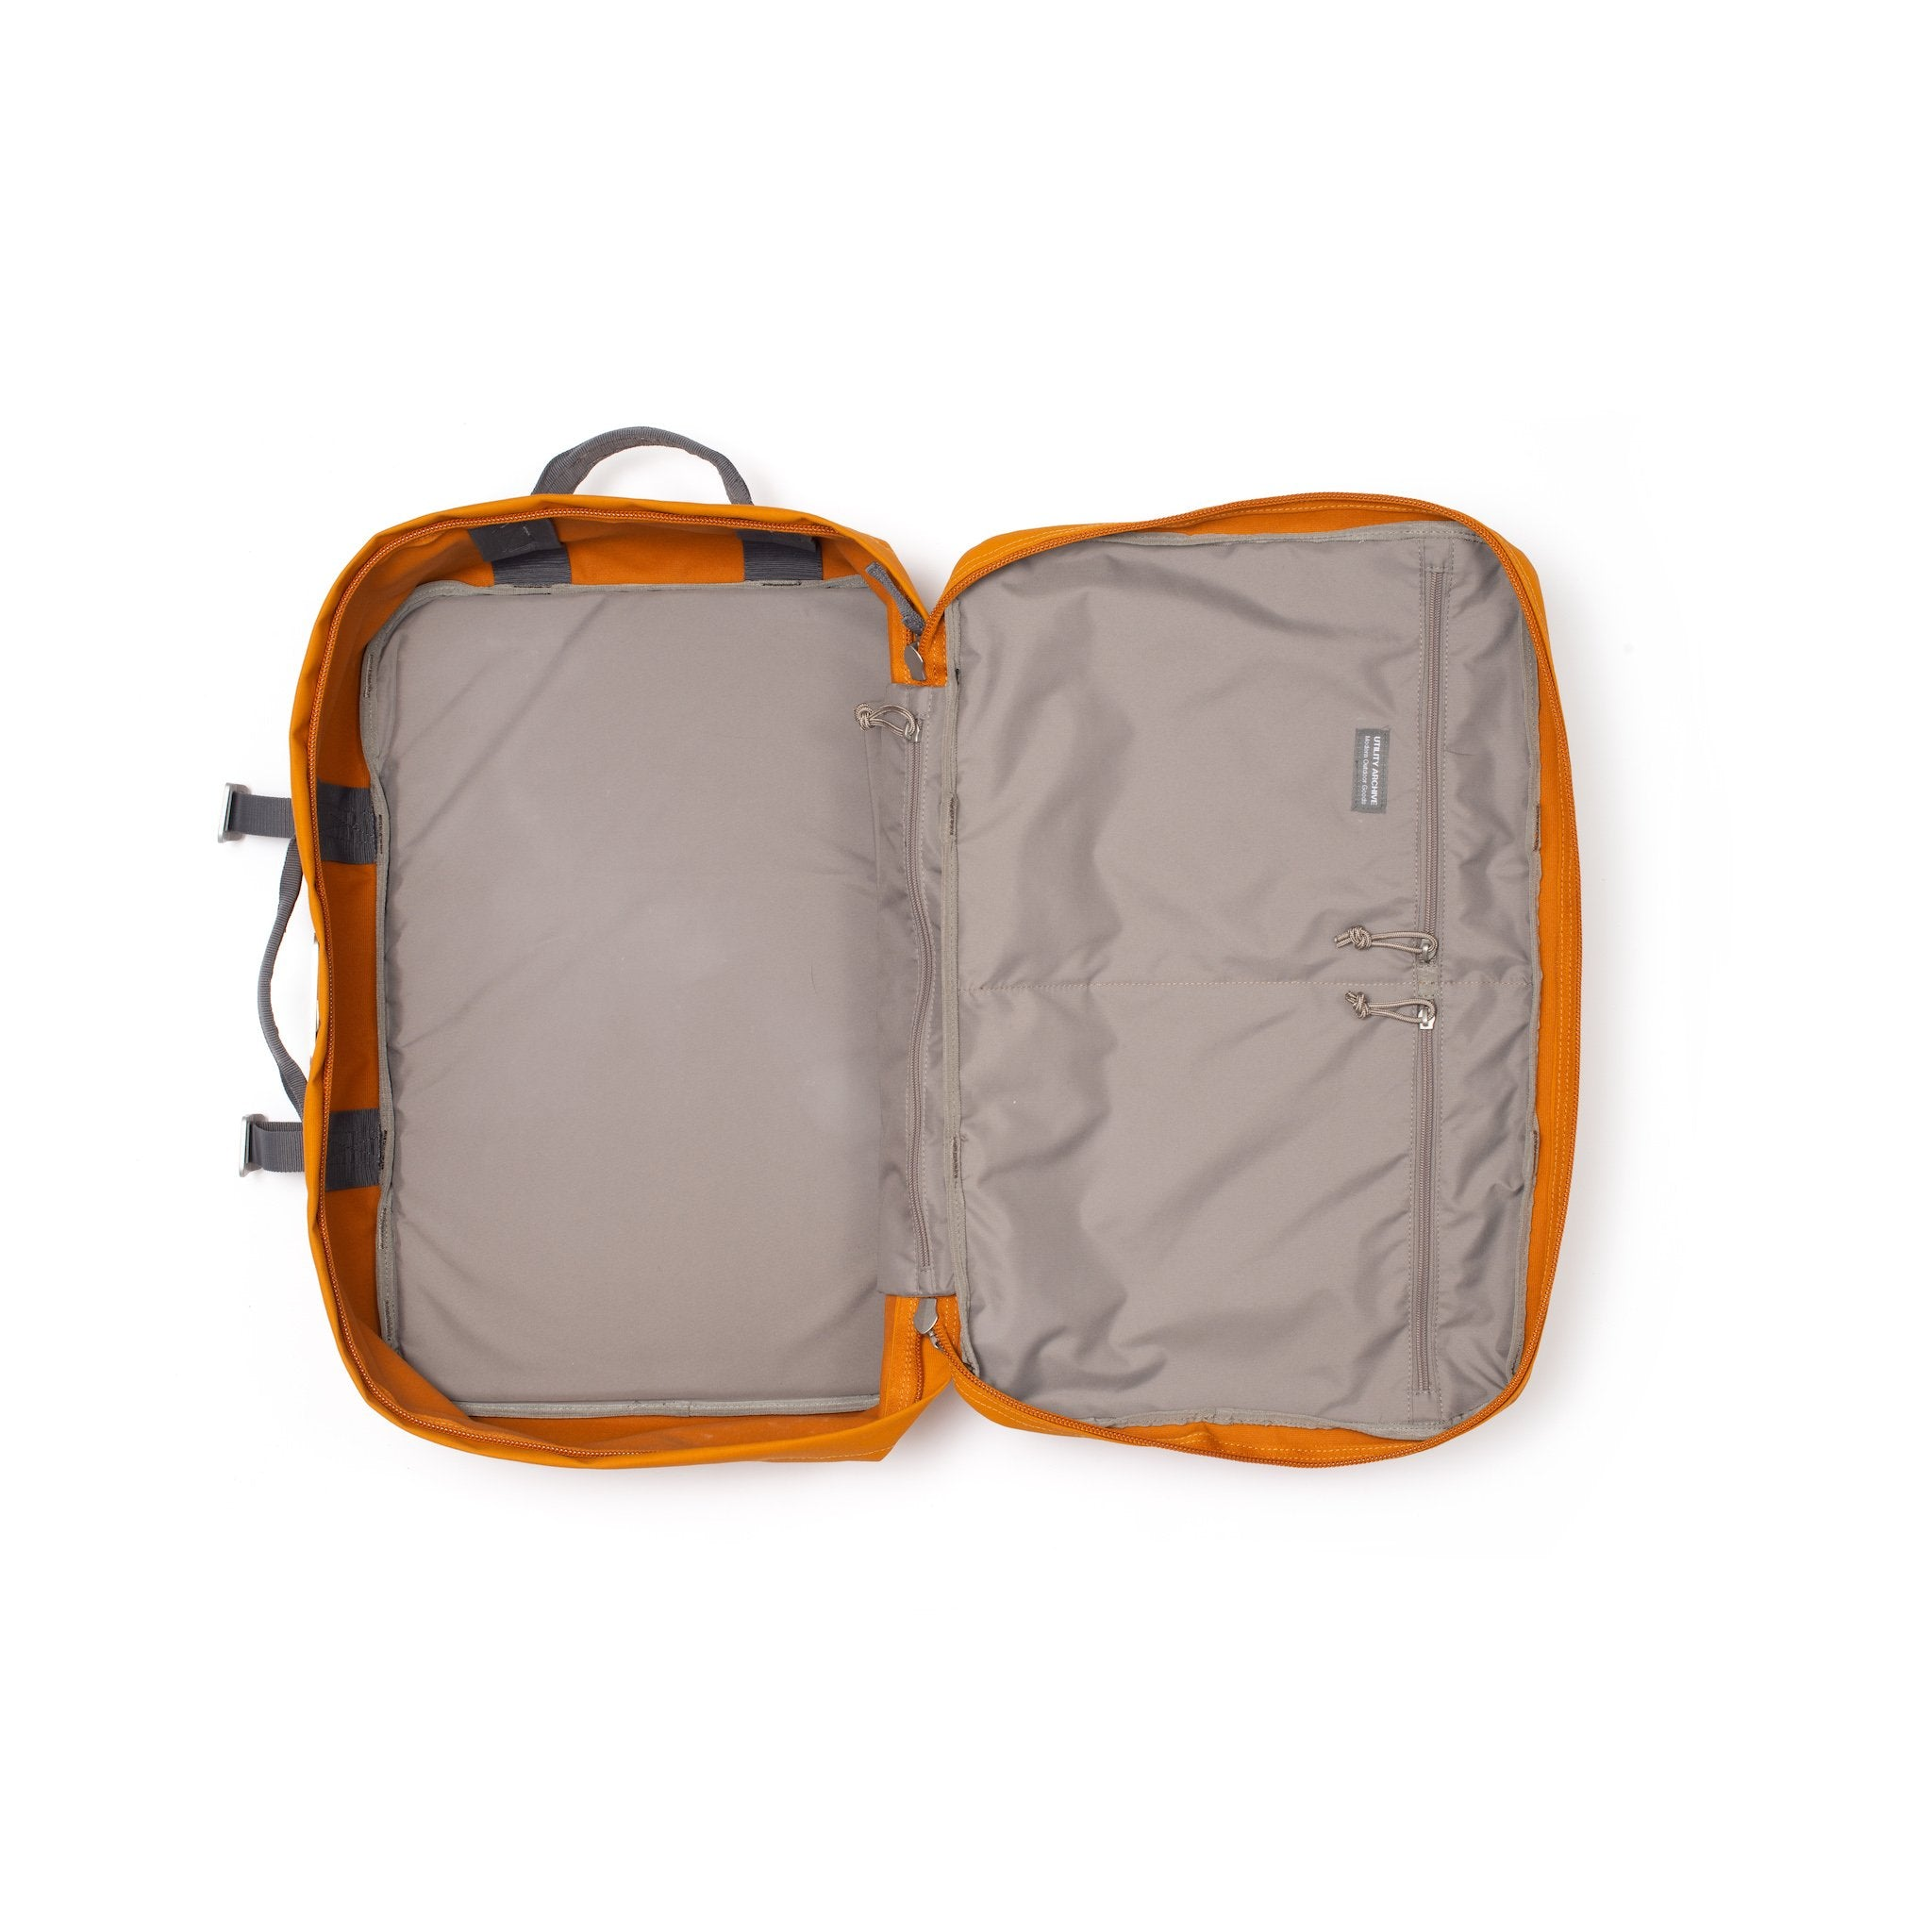 Orange travel backpack interior.